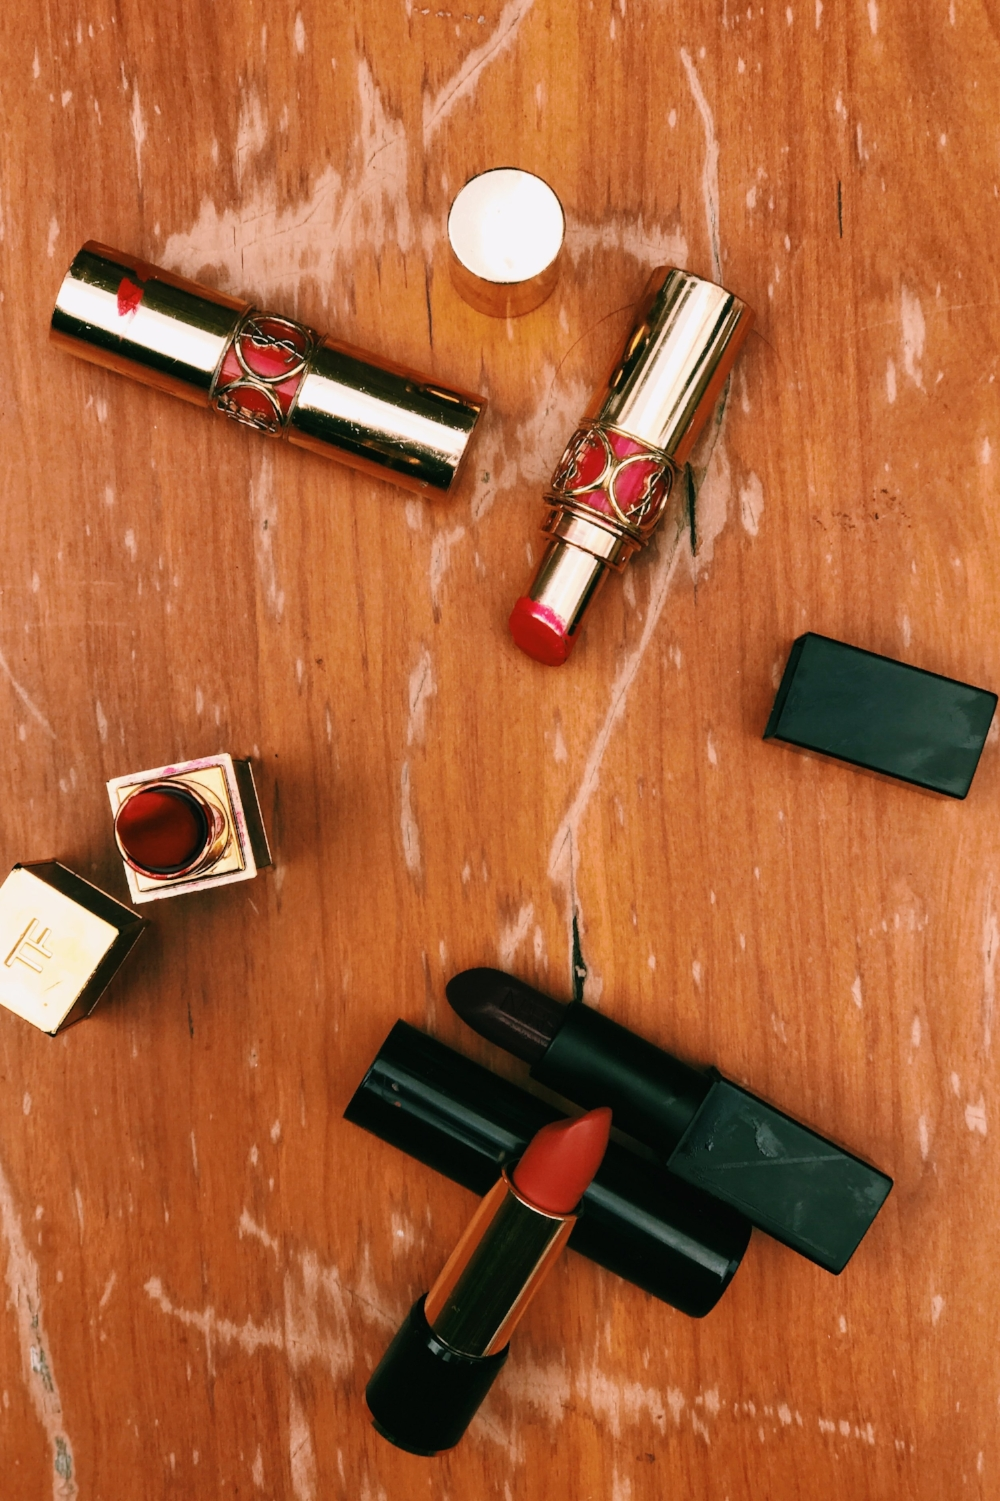 Sealed Lips. - YSL for creamy kisses and Tom Ford for matte and dry onesLancome L'Absolu Rouge Cafe Parisien for everyday desires and NARS for rebellious nights